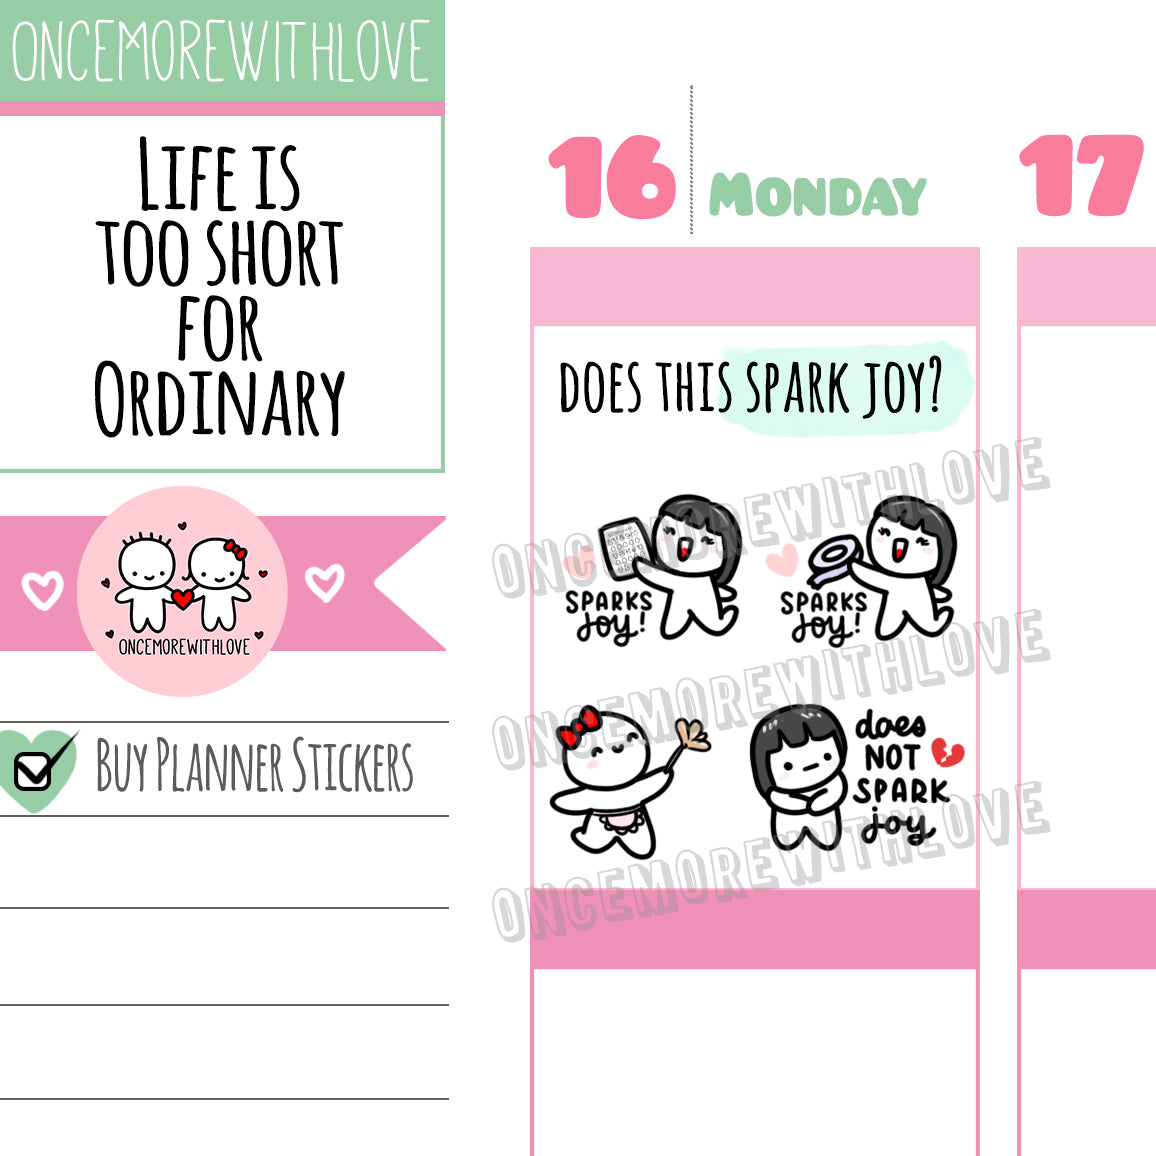 M525 - Does This Spark JOY? Konmari Spring Cleaning Planner Stickers